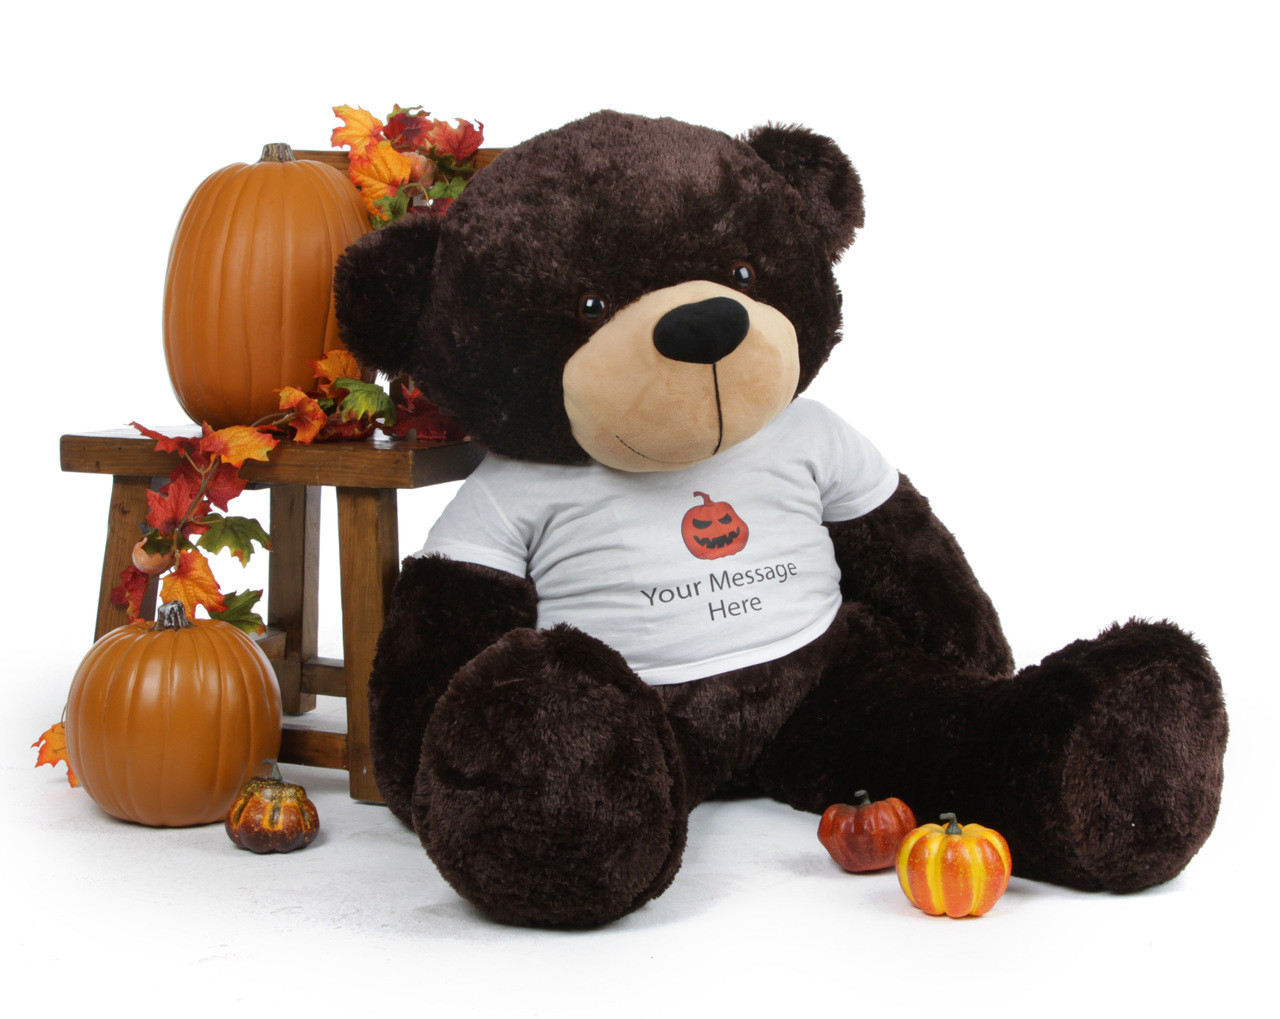 Awesome Brownie Cuddles Personalized Giant Halloween Teddy Bear 48in